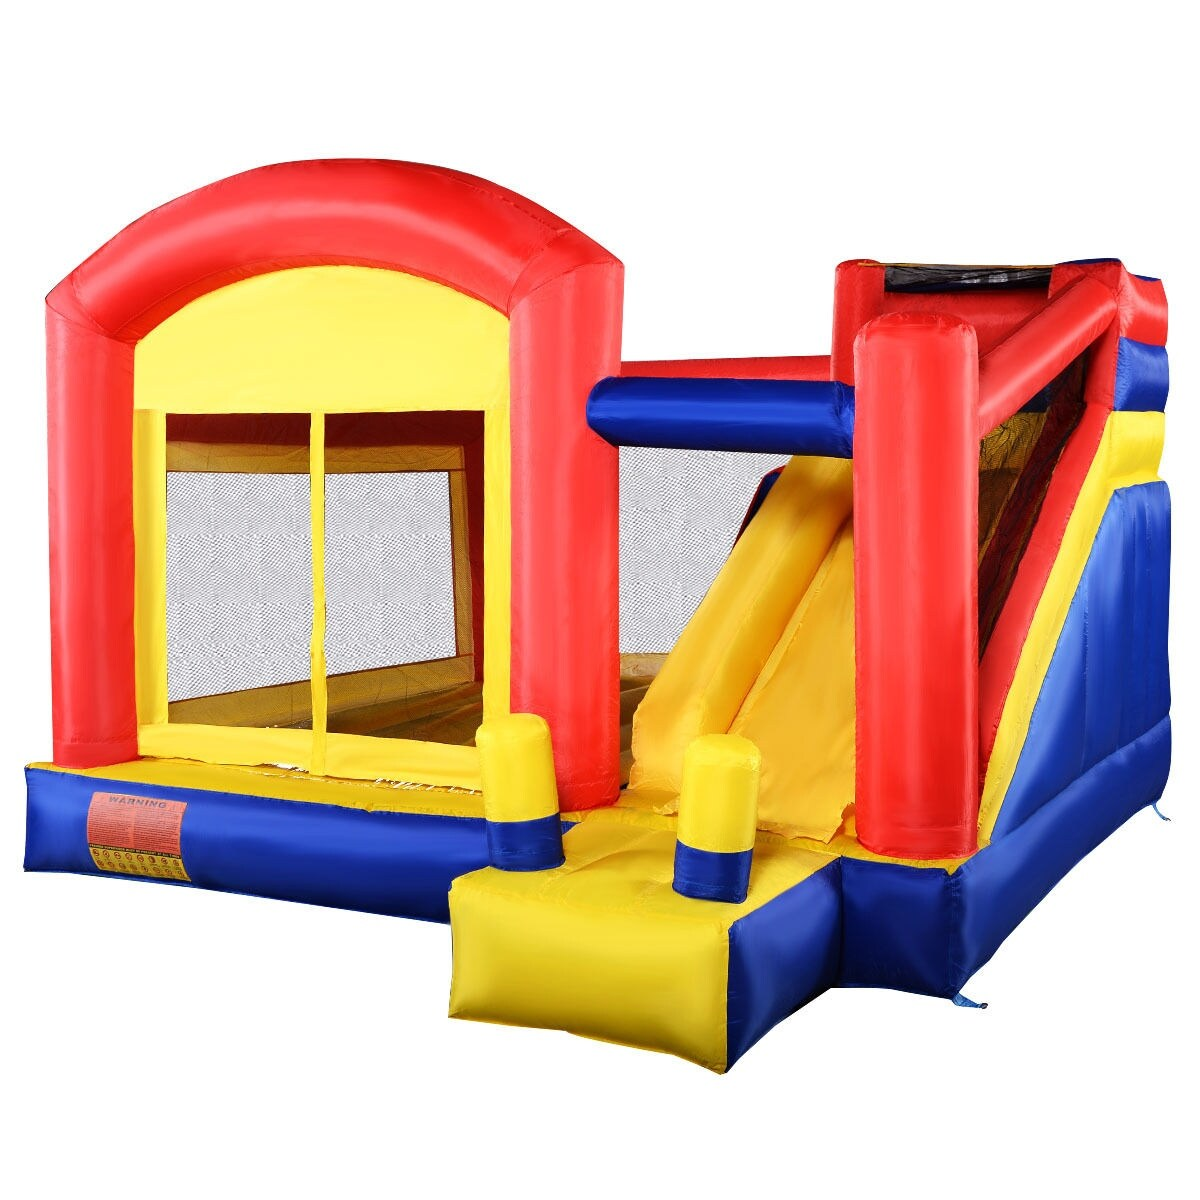 63e9e92287c Buy Kids Inflatable Bounce Houses Online at Overstock